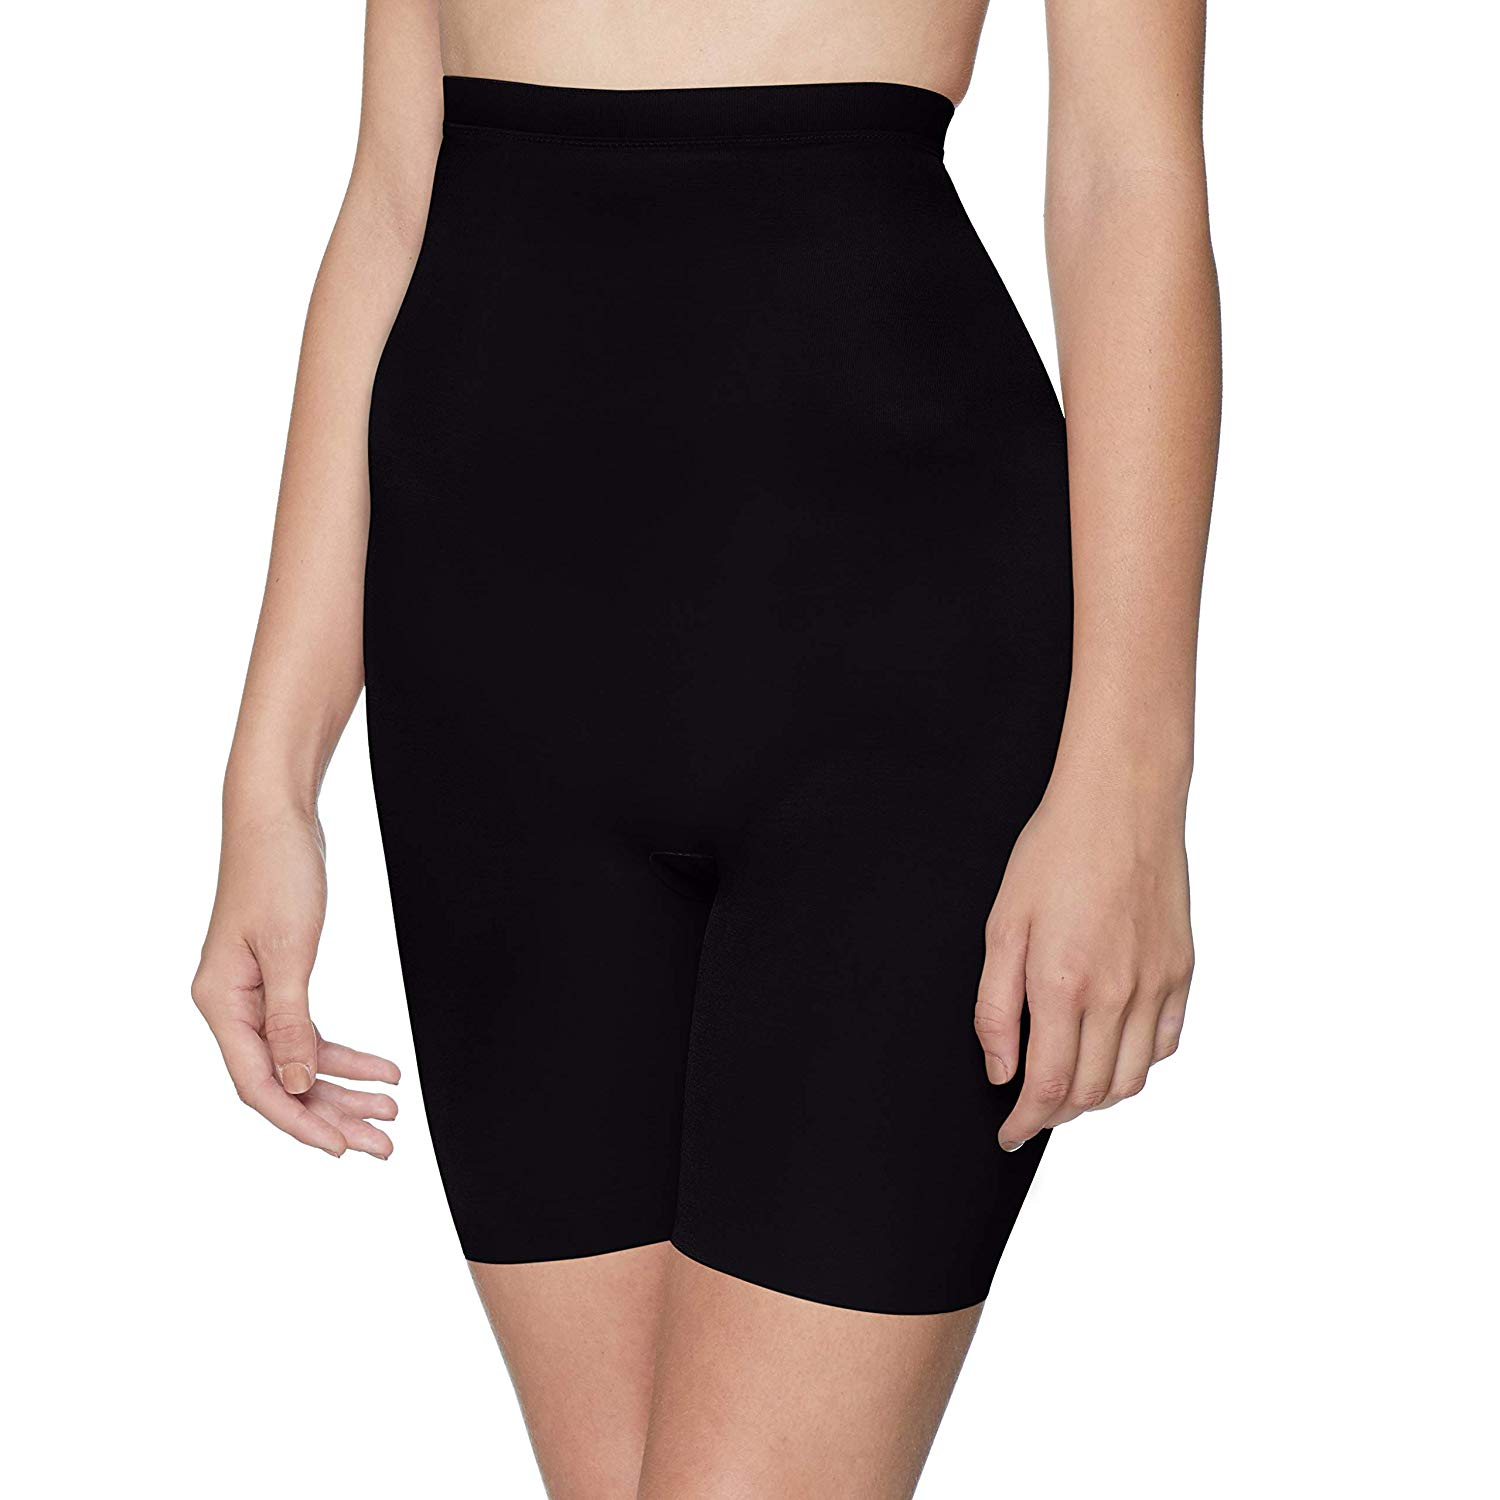 e8842d031 Get Quotations · SPANX Skinny Britches High-Waist Mid-Thigh Shaper